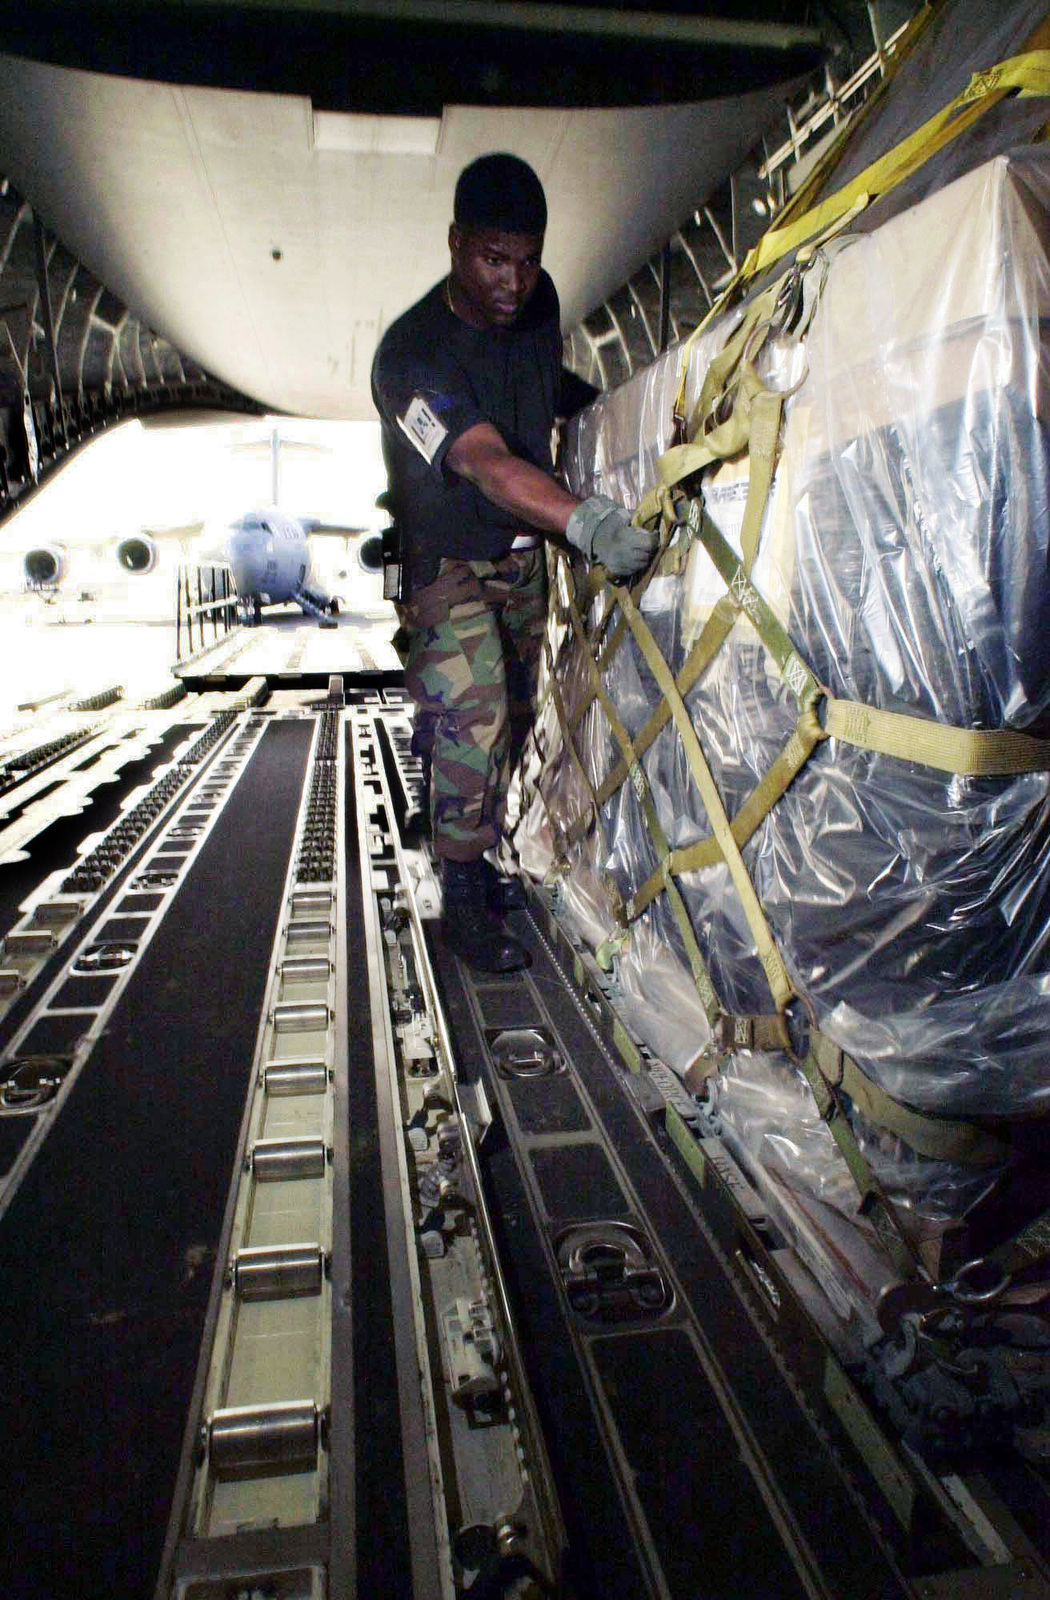 US Air Force (USAF) SENIOR AIRMAN (SRA) Lowell Pointer, 728th Air Mobility Squadron (AMS) loads palletized cargo onto a C-17A Globemaster III aircraft, while deployed at a forward location in support of Operation ENDURING FREEDOM